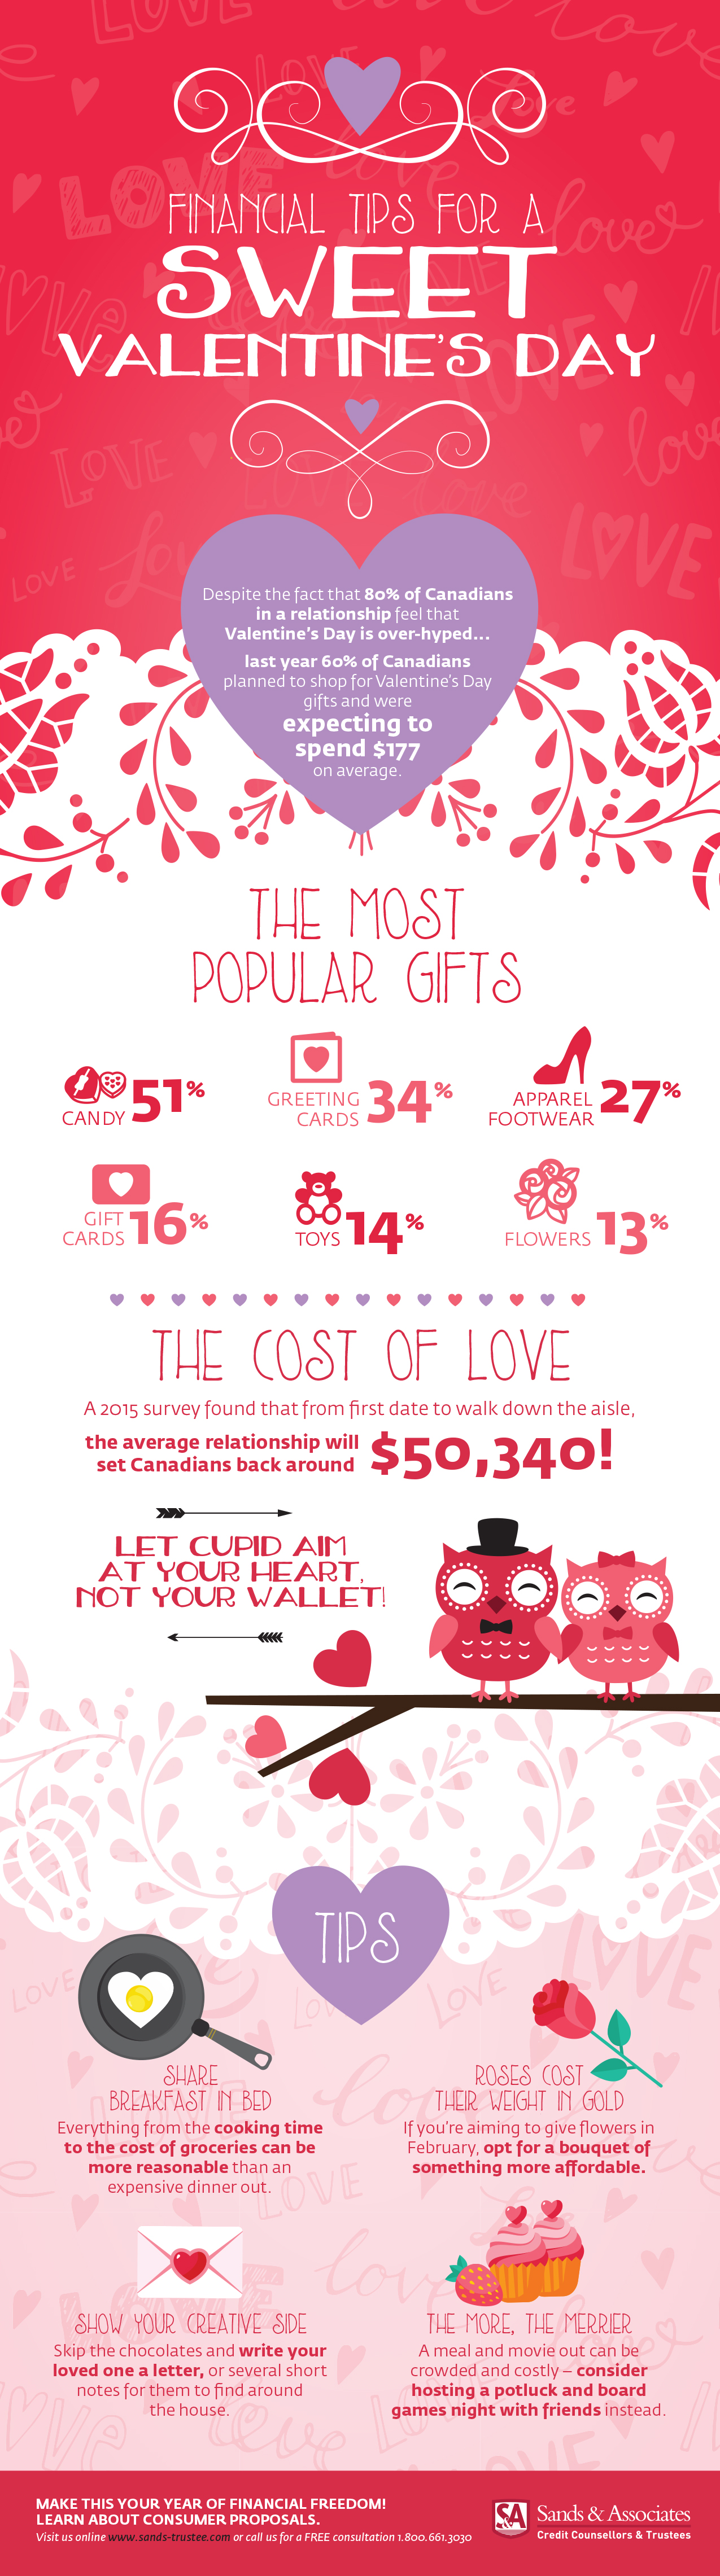 Financial Tips for a Sweet Valentine's Day